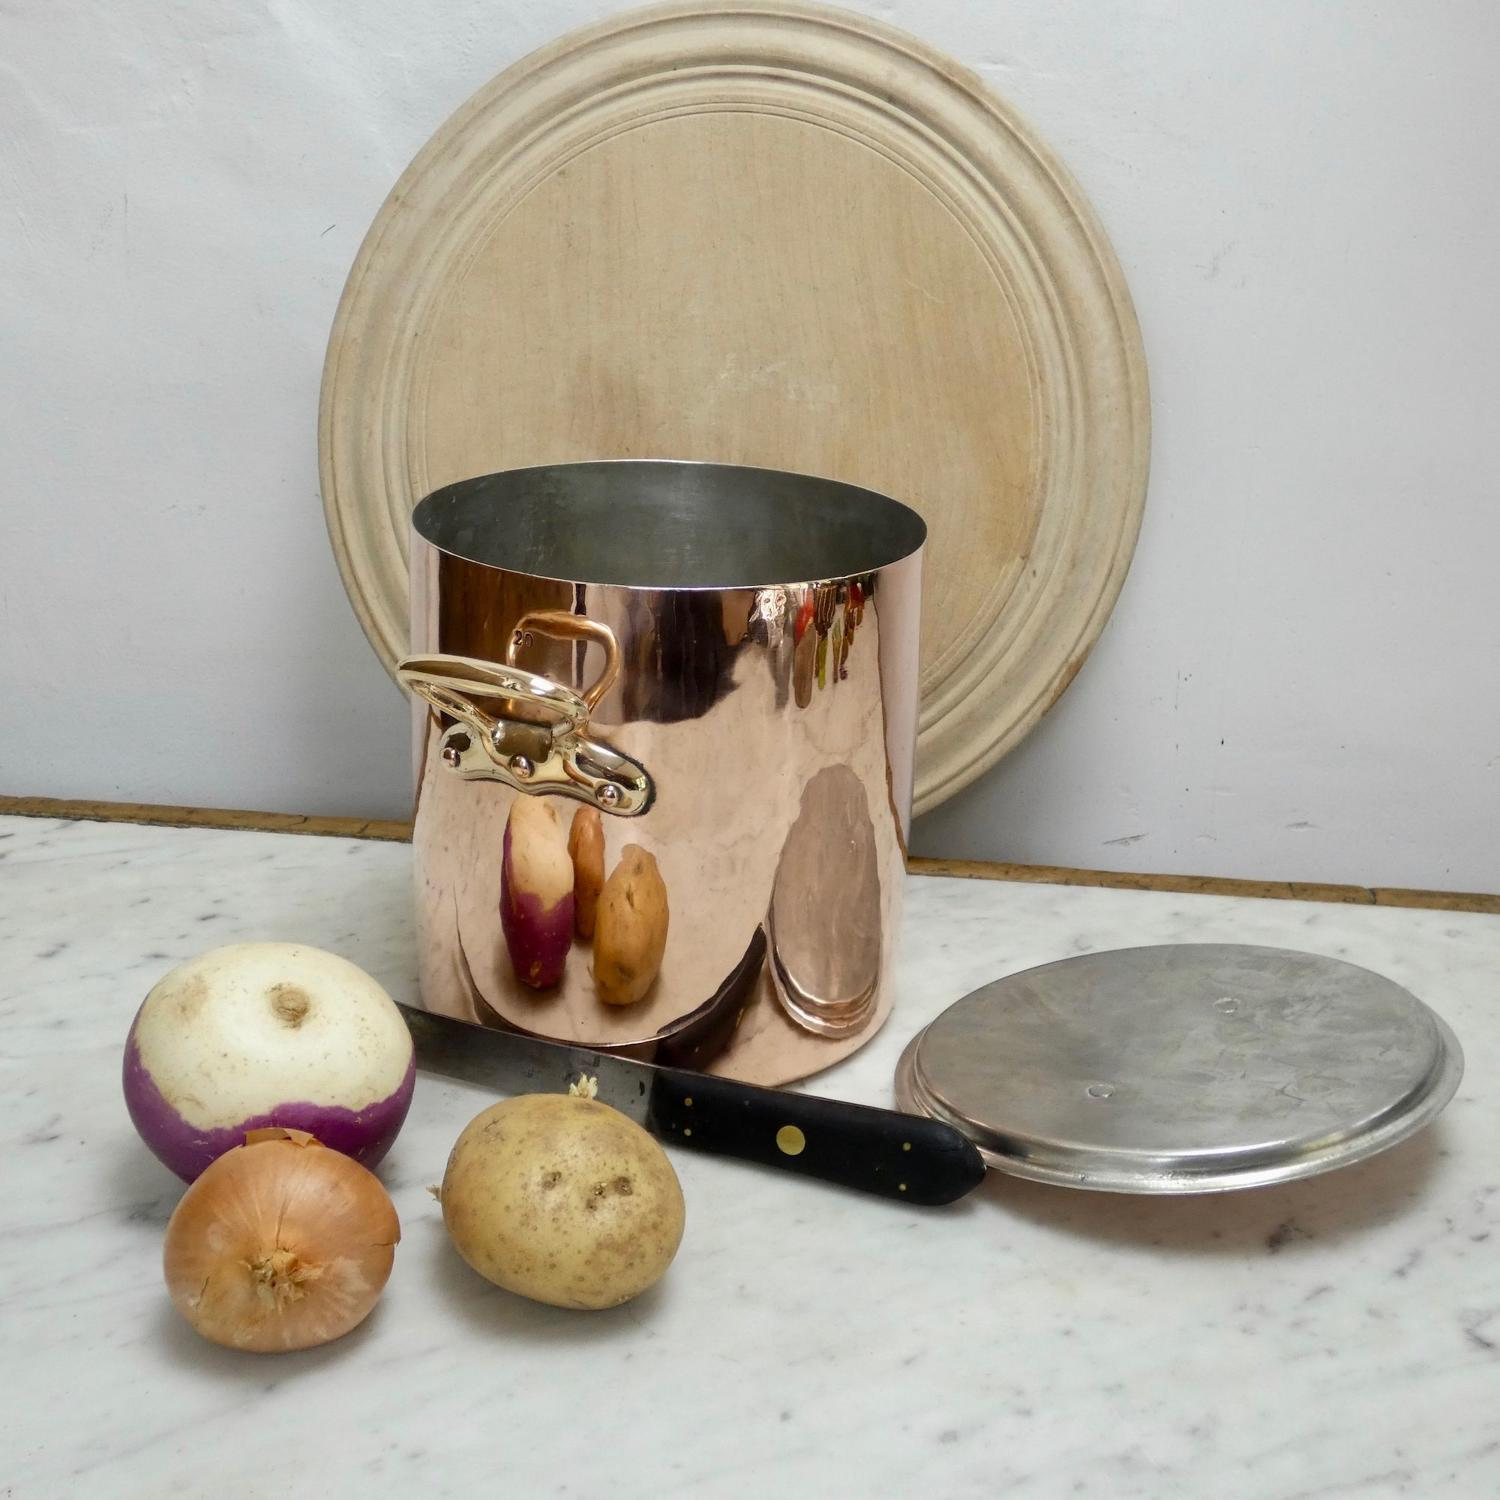 Small French stockpot